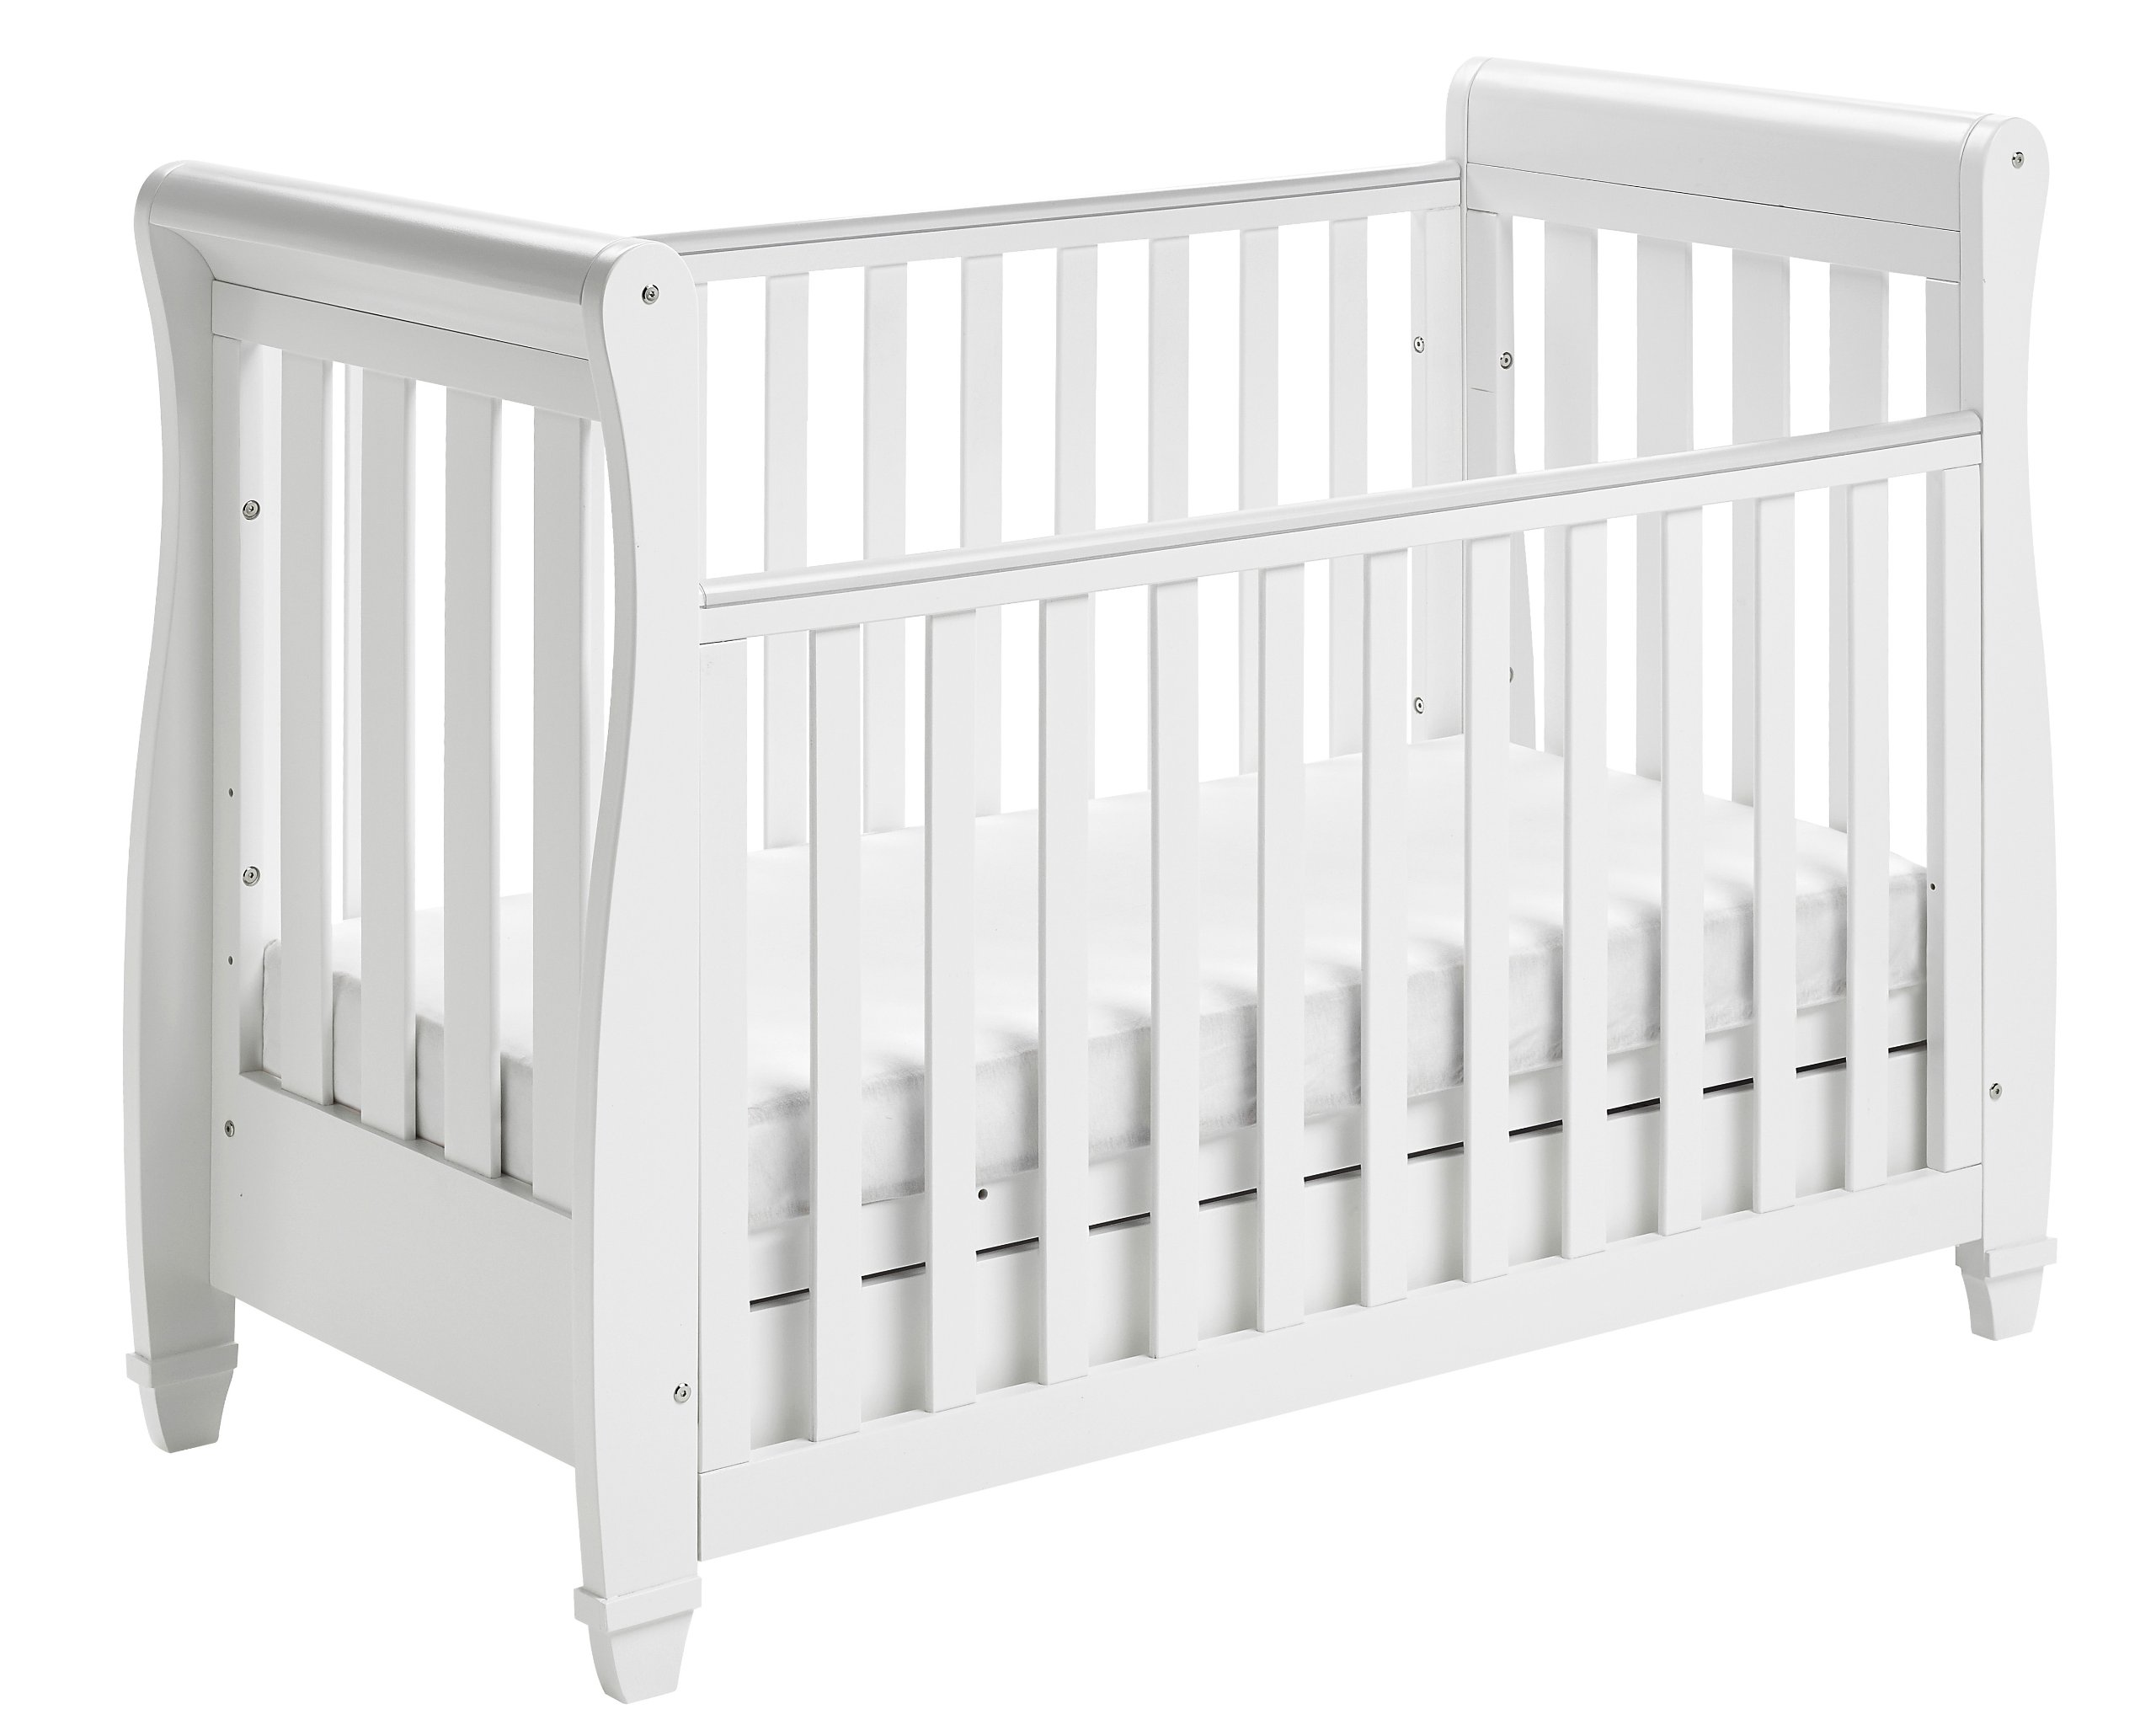 Babymore Eva Sleigh Cot Bed Dropside with Drawer (White Finish) + FOAM MATTRESS  Easily convert to junior bed/sofa/day bed, Meet British and European safety standards; Single handed drop side mechanism allow easy access to your baby Protective Teething rail on top of both sides. Full drawer on runner provide extra storage 5